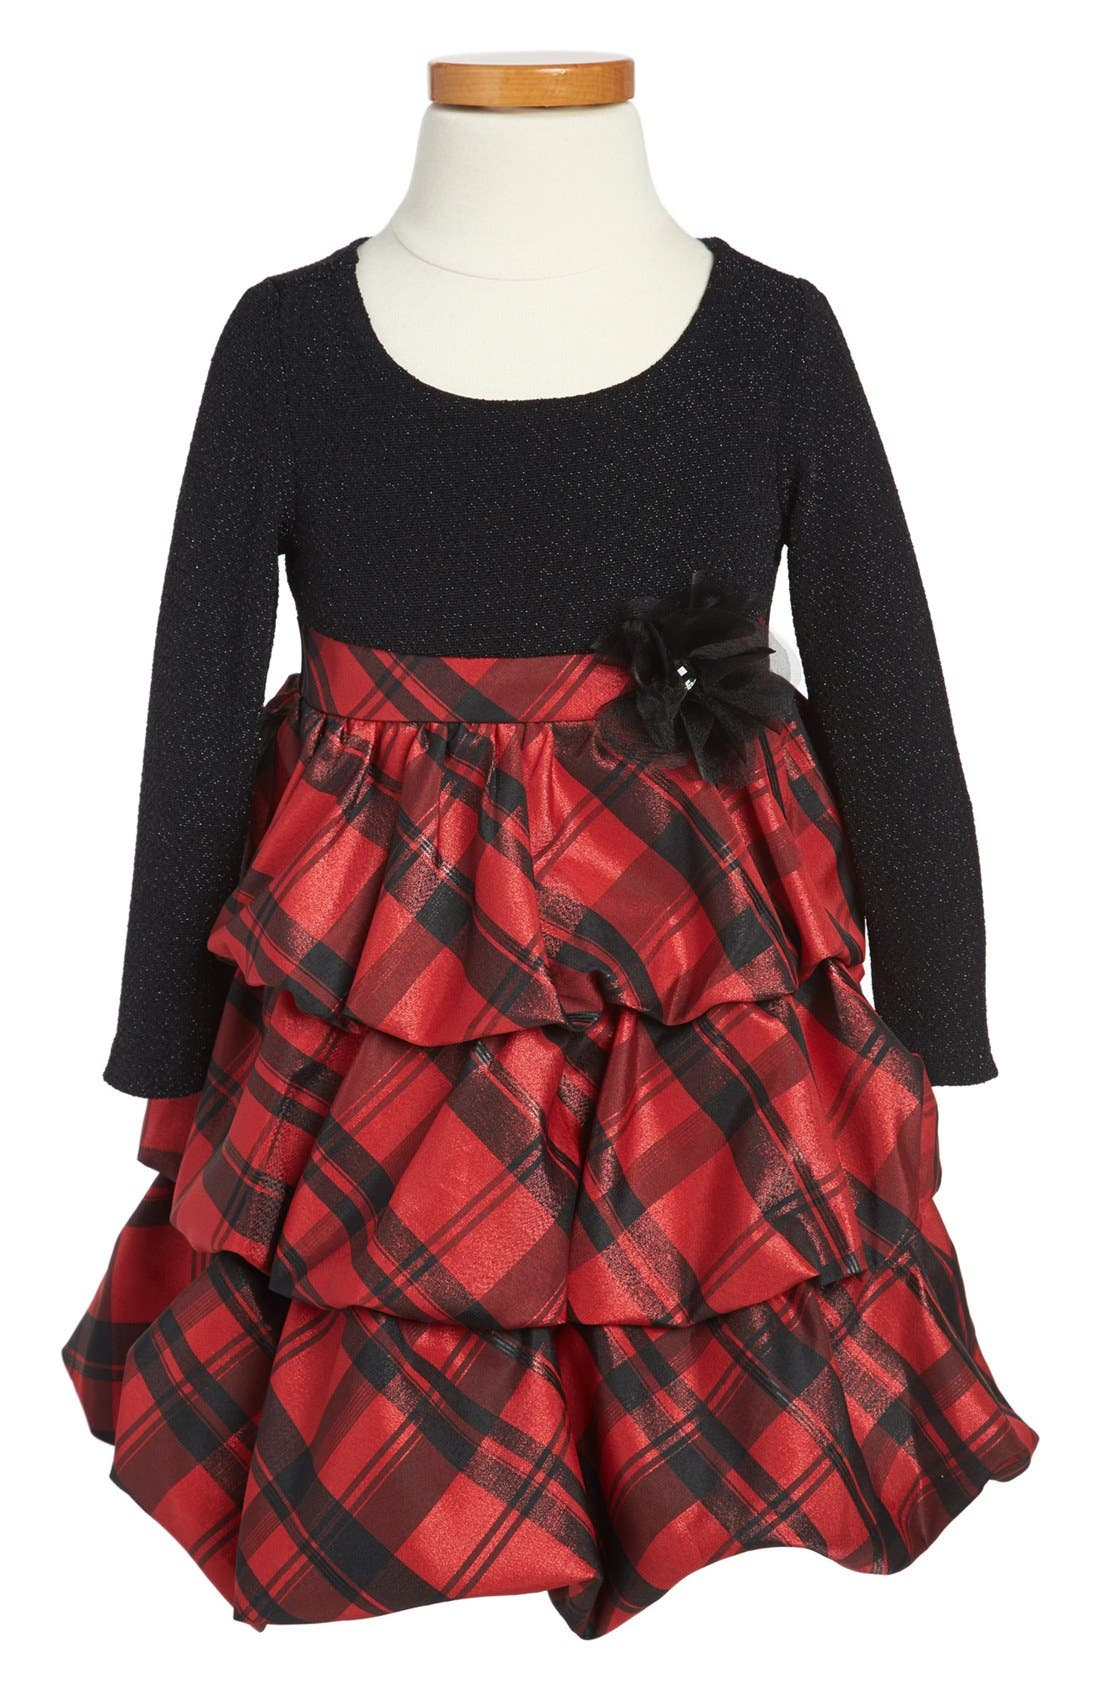 Alternate Image 1 Selected - Iris & Ivy Tartan Taffeta Dress (Toddler Girls)